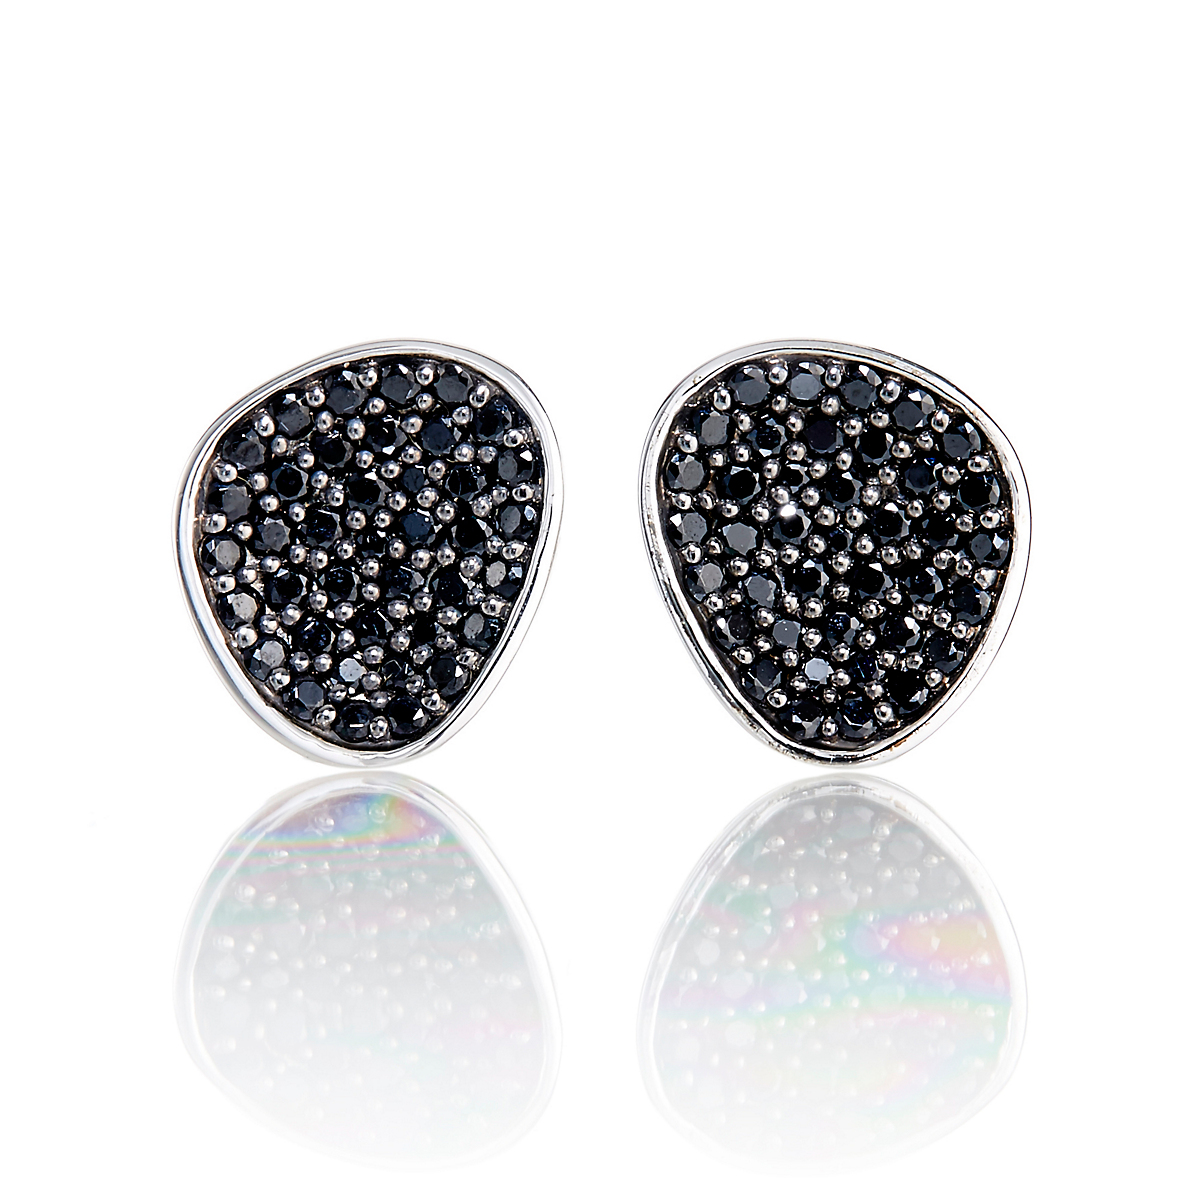 Gump S Pavé Black Spinel Organic Shape Stud Earrings